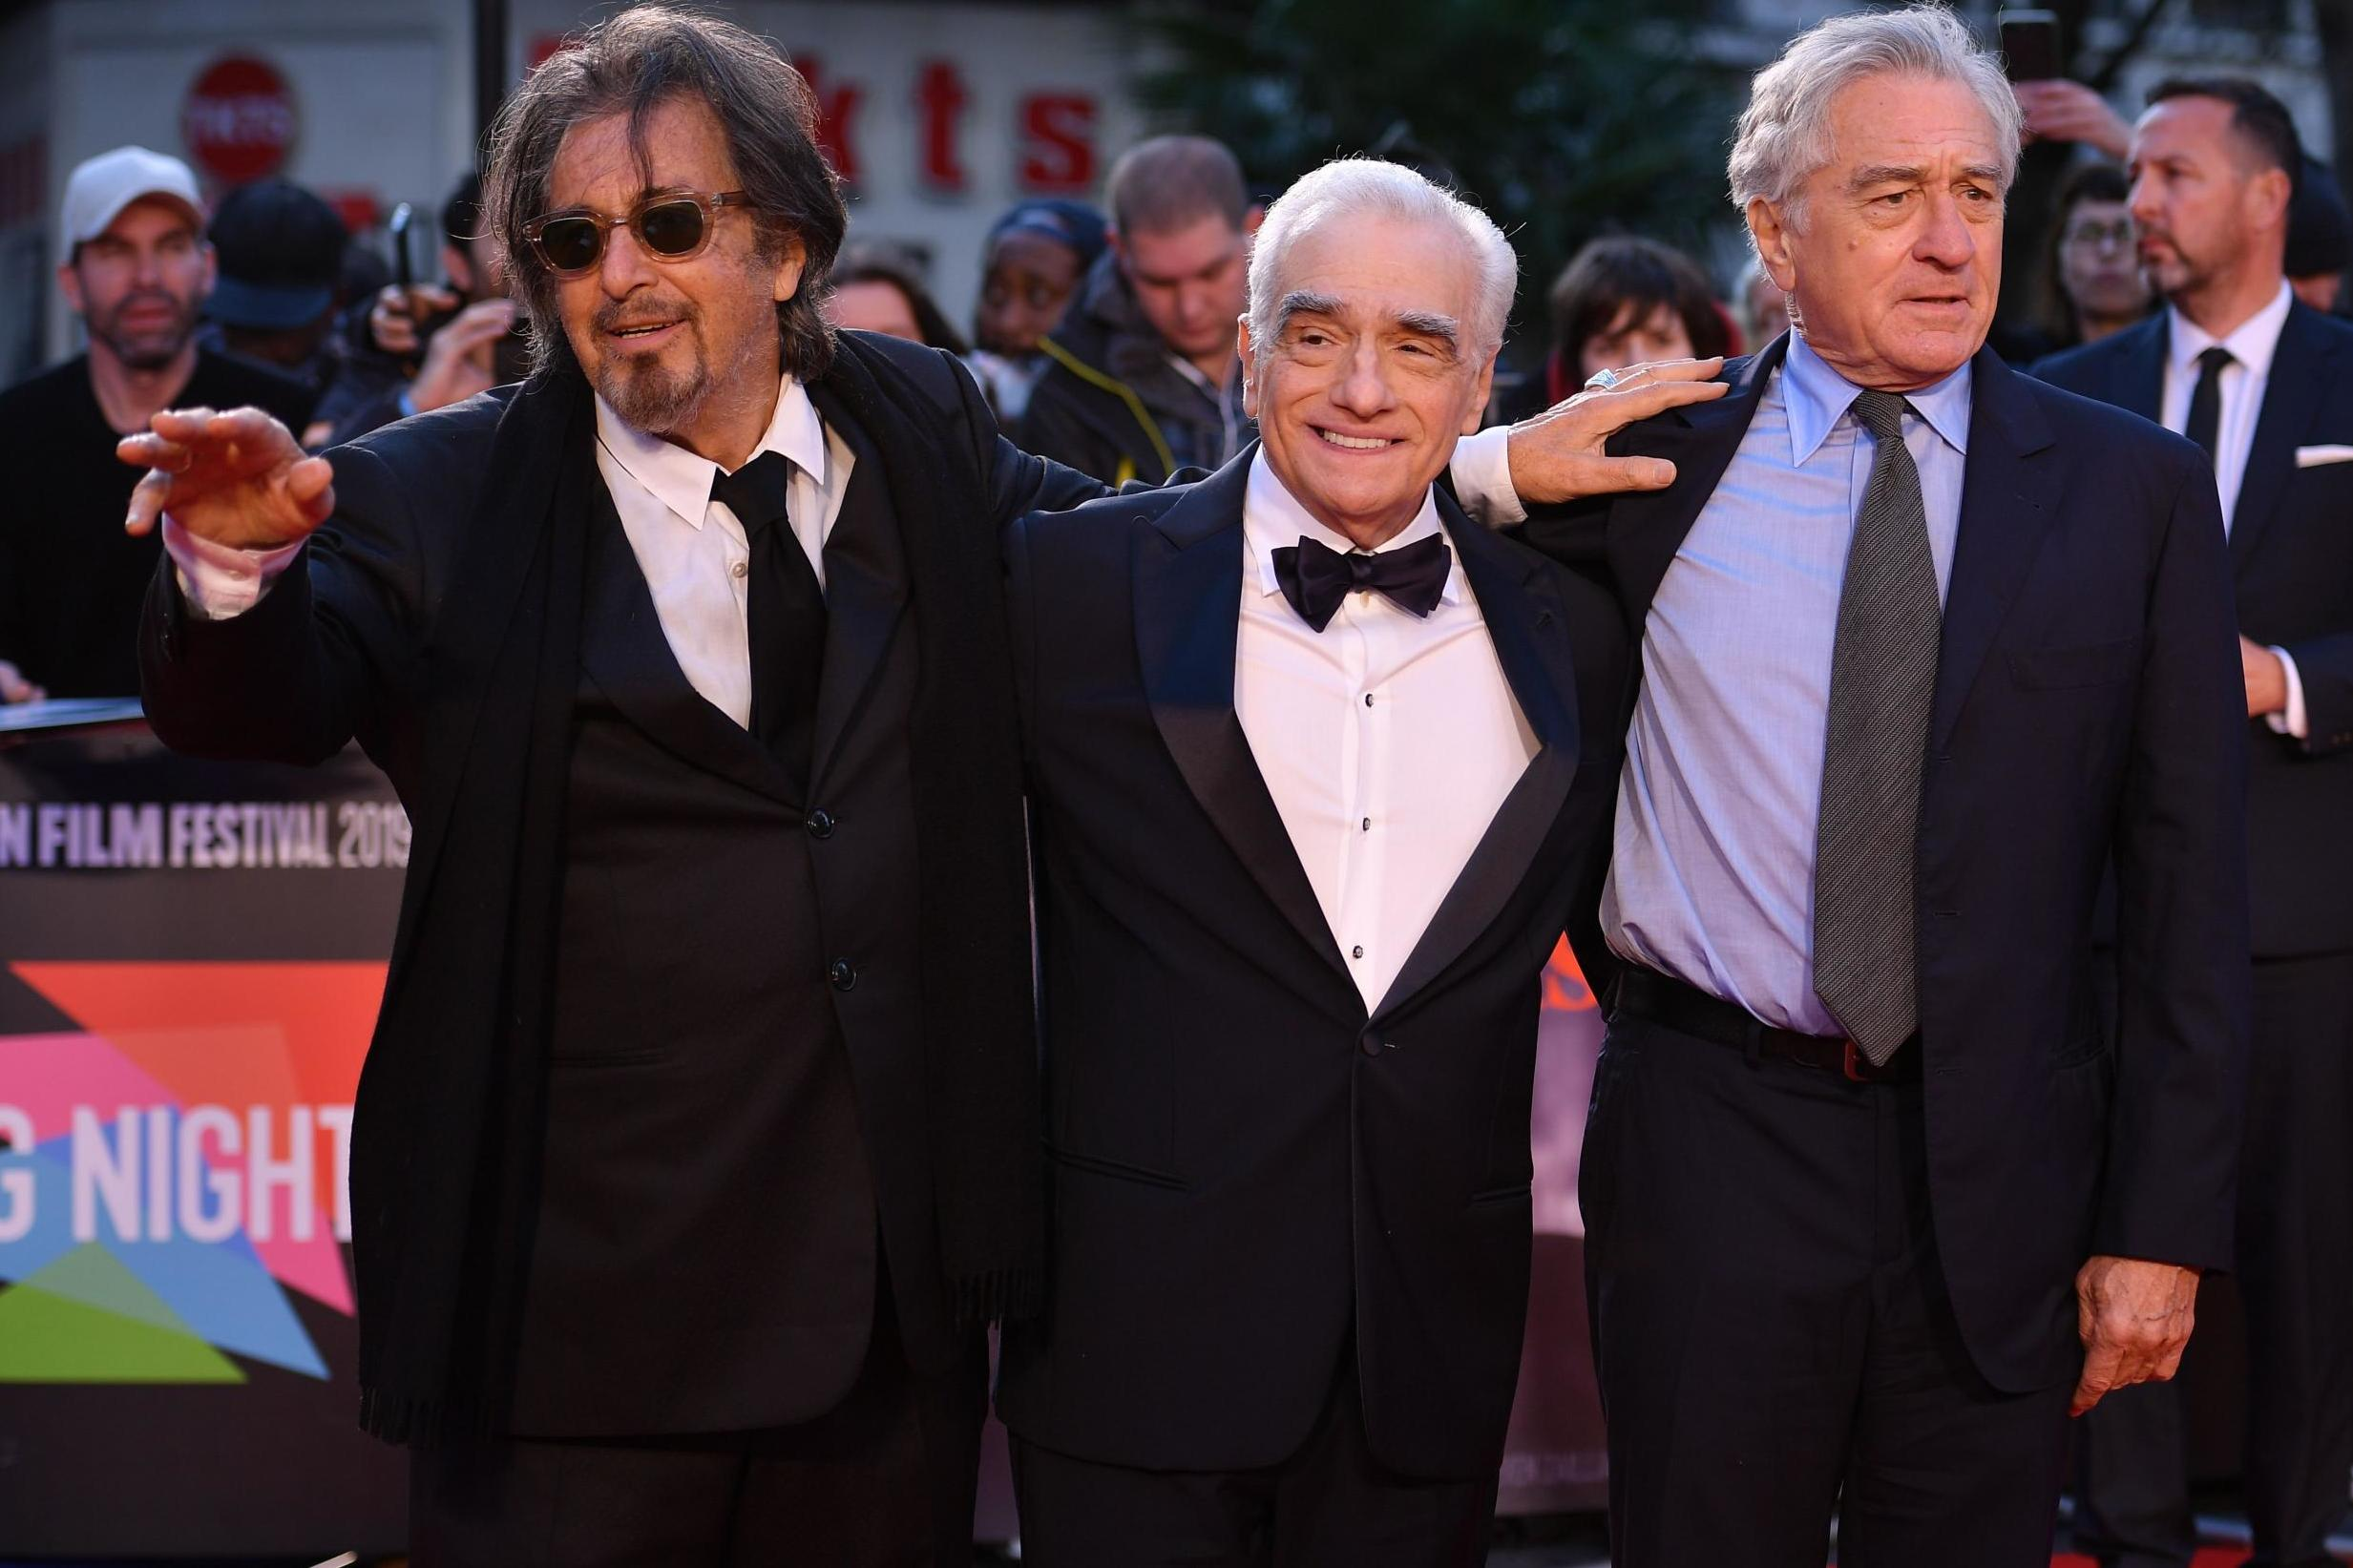 Scarface: Robert de Niro almost starred in iconic mob film instead of Al Pacino